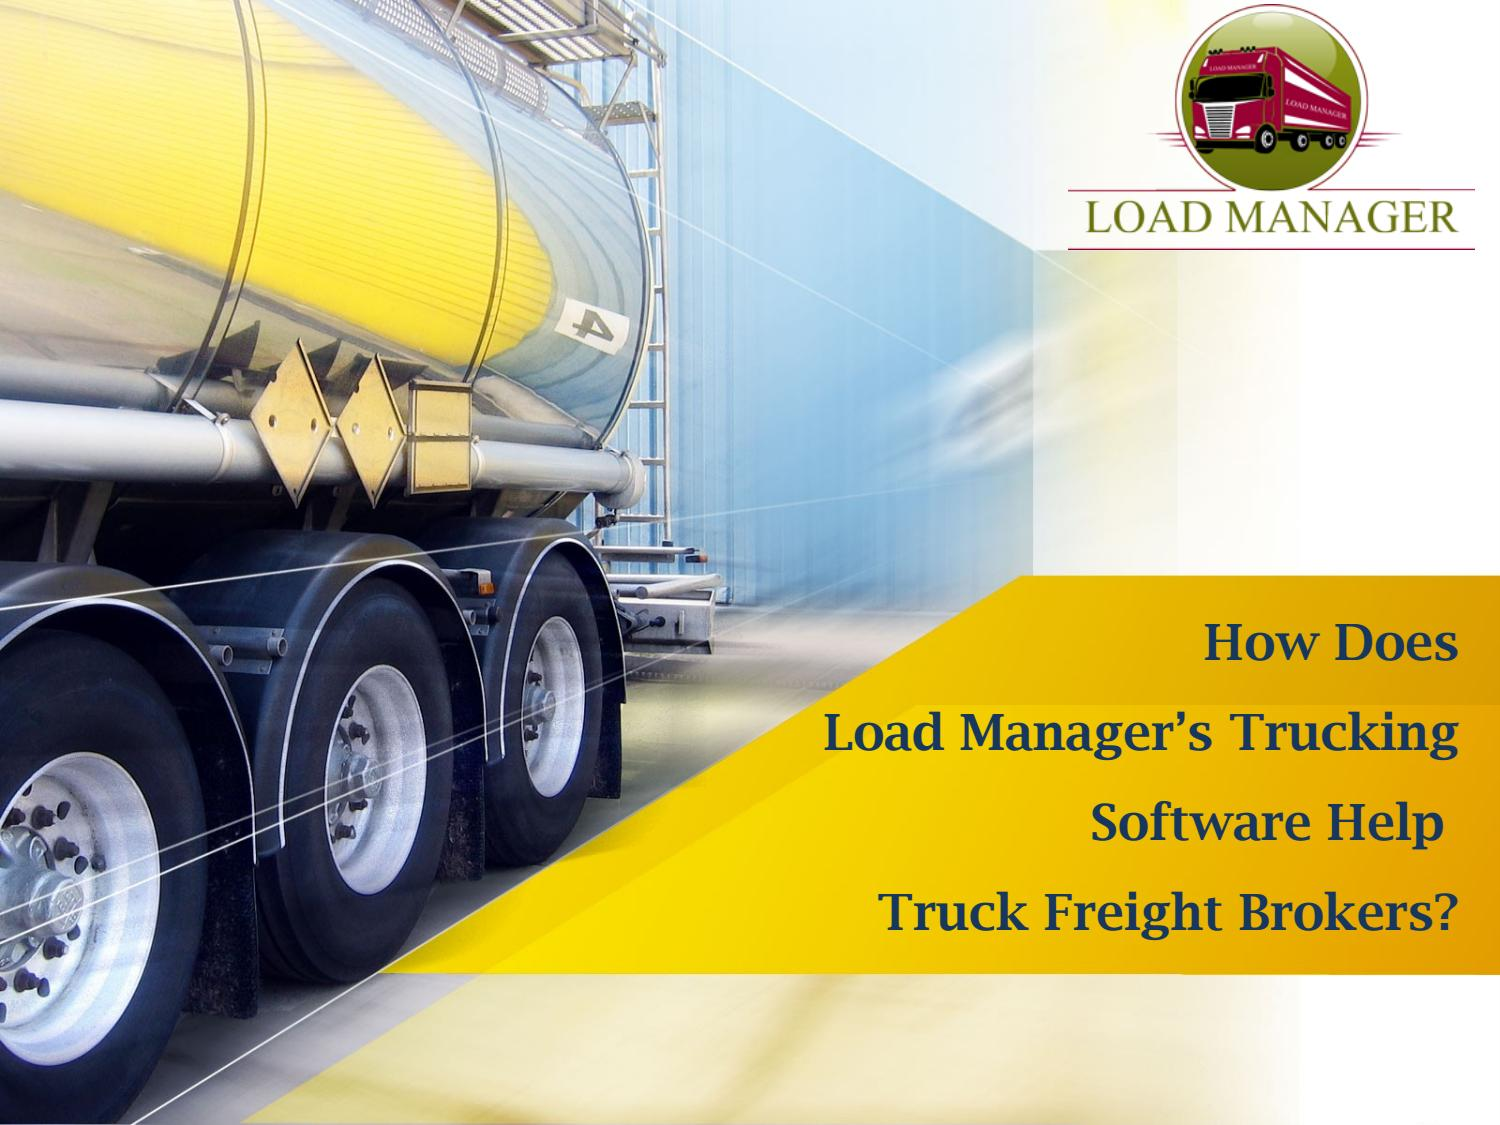 How Does Load Manager's Trucking Software Help Truck Freight Brokers